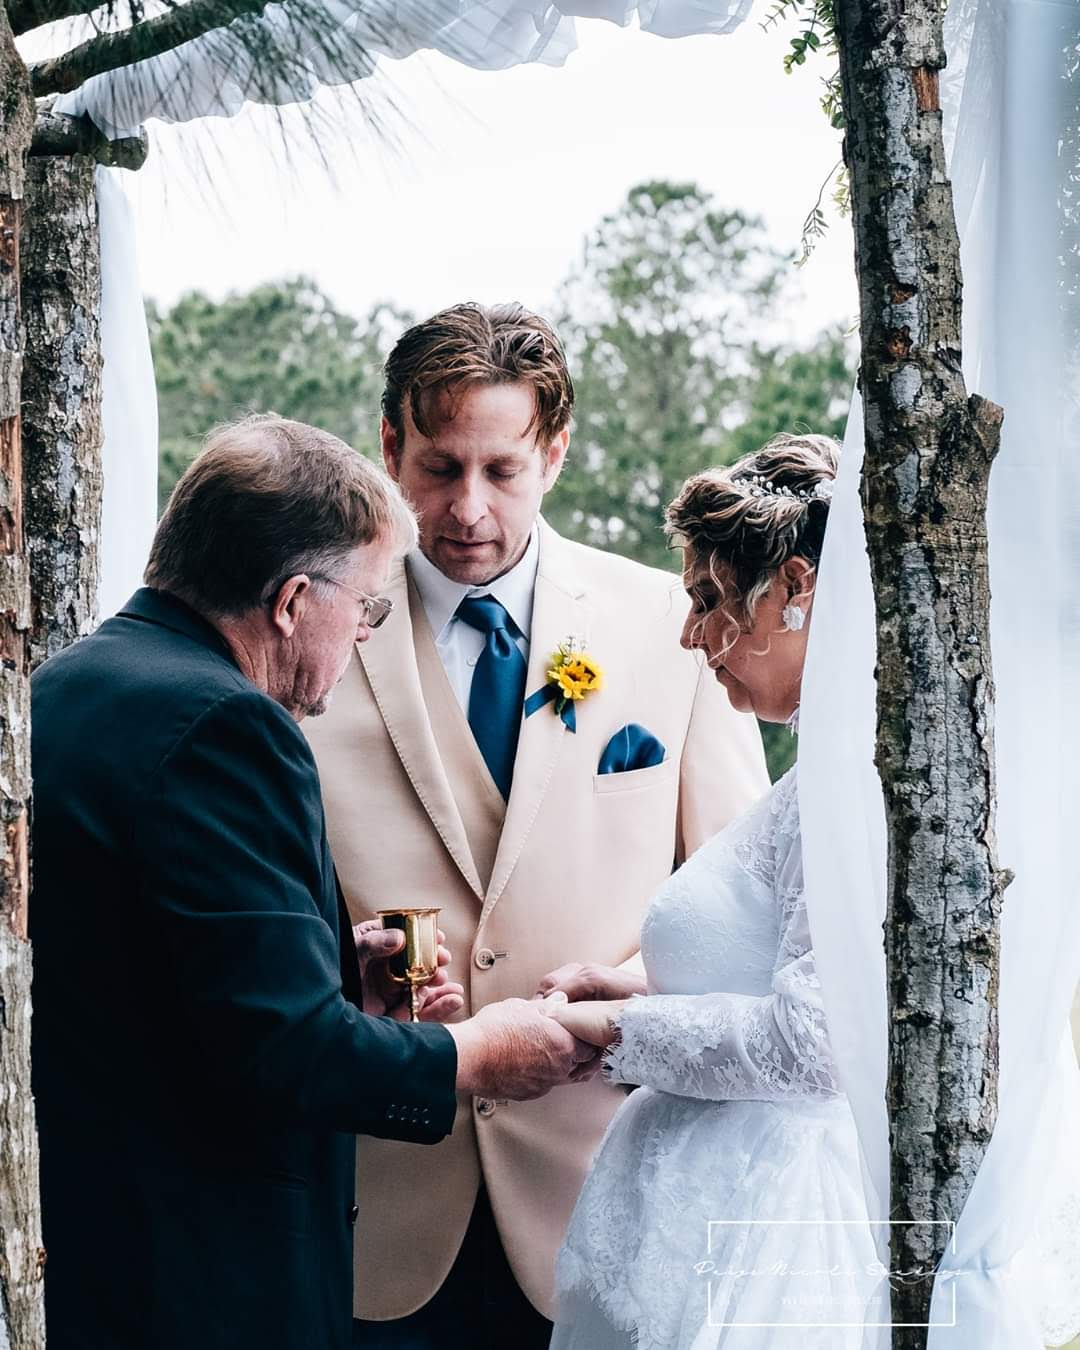 Wedding couple exchanging vows in front of a minister